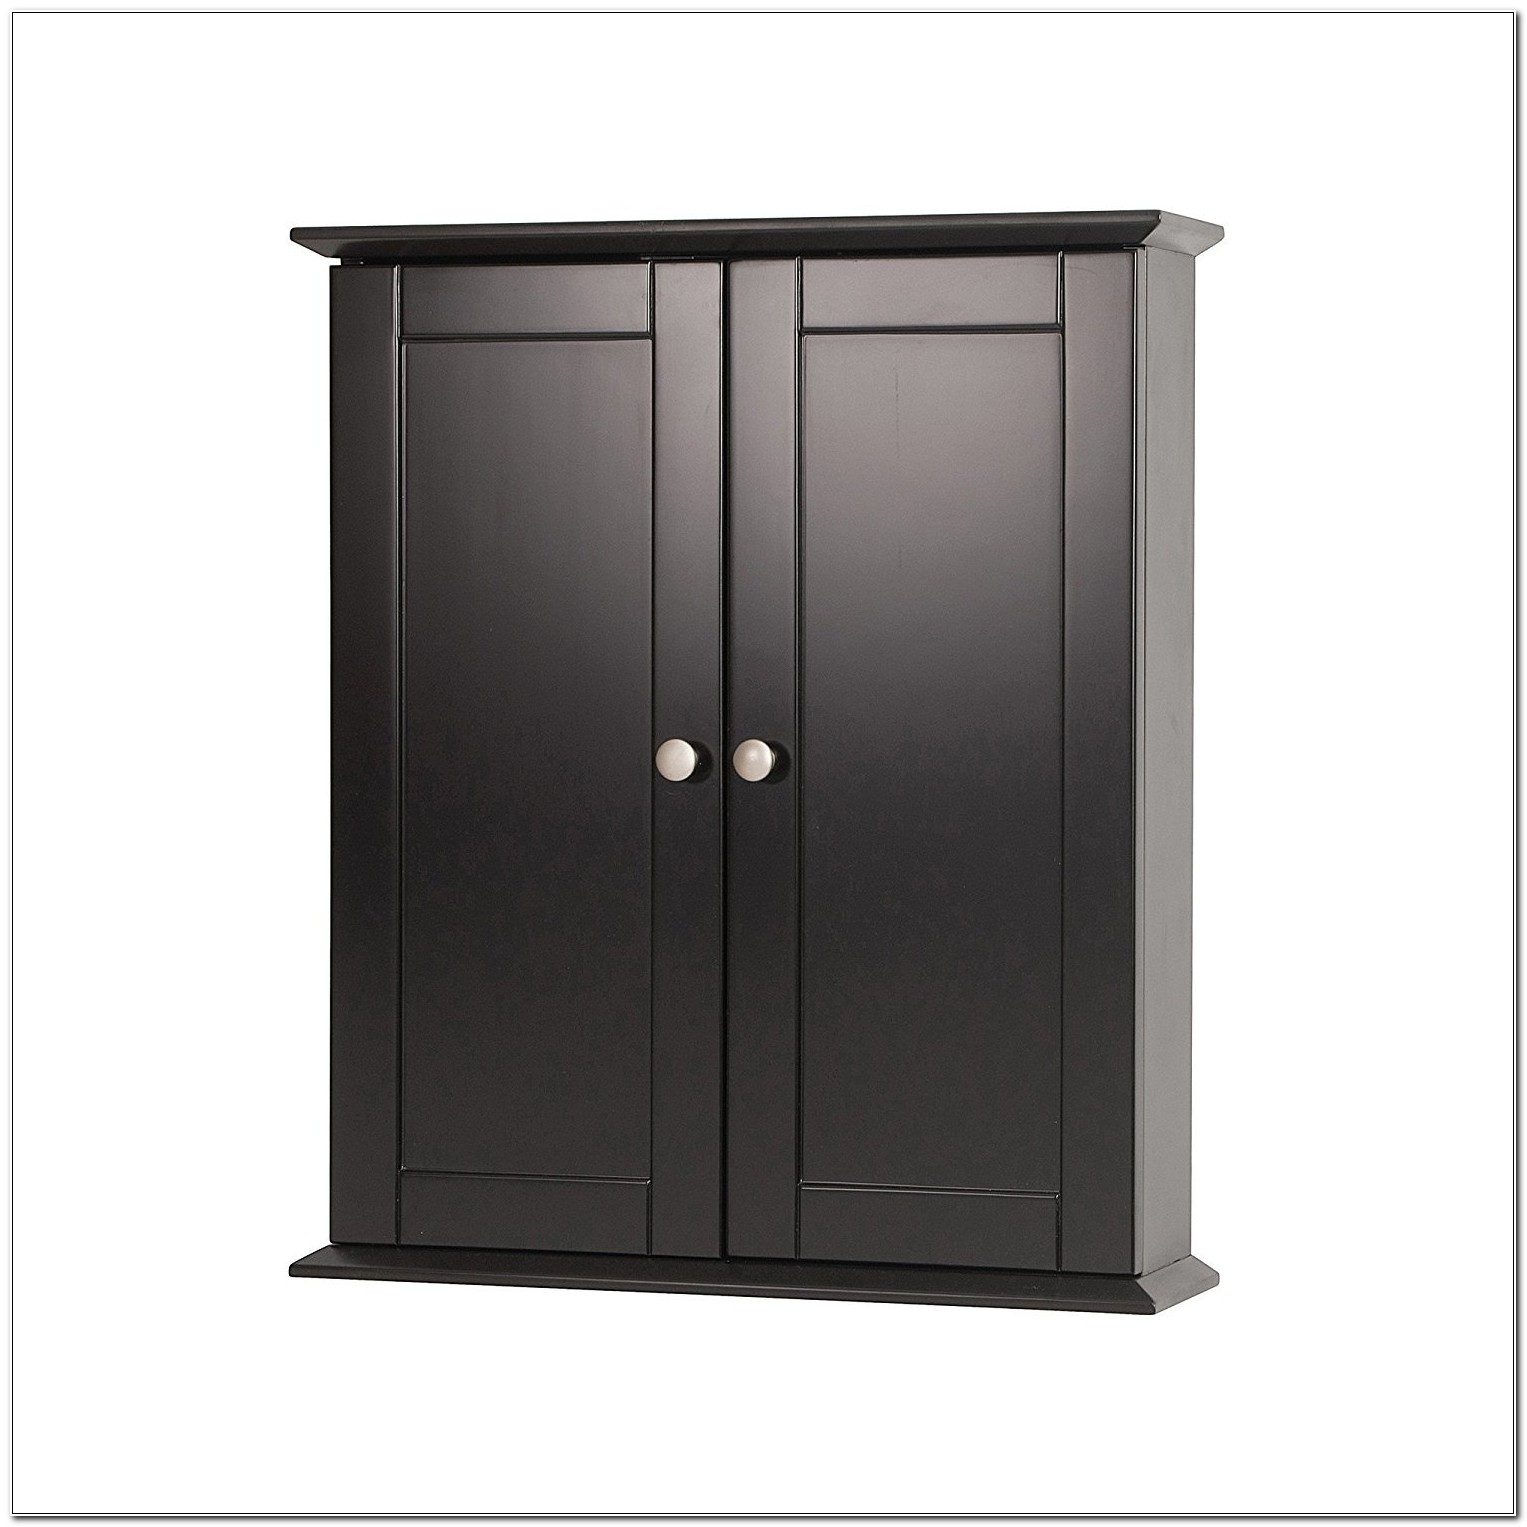 Black Bathroom Wall Cabinet